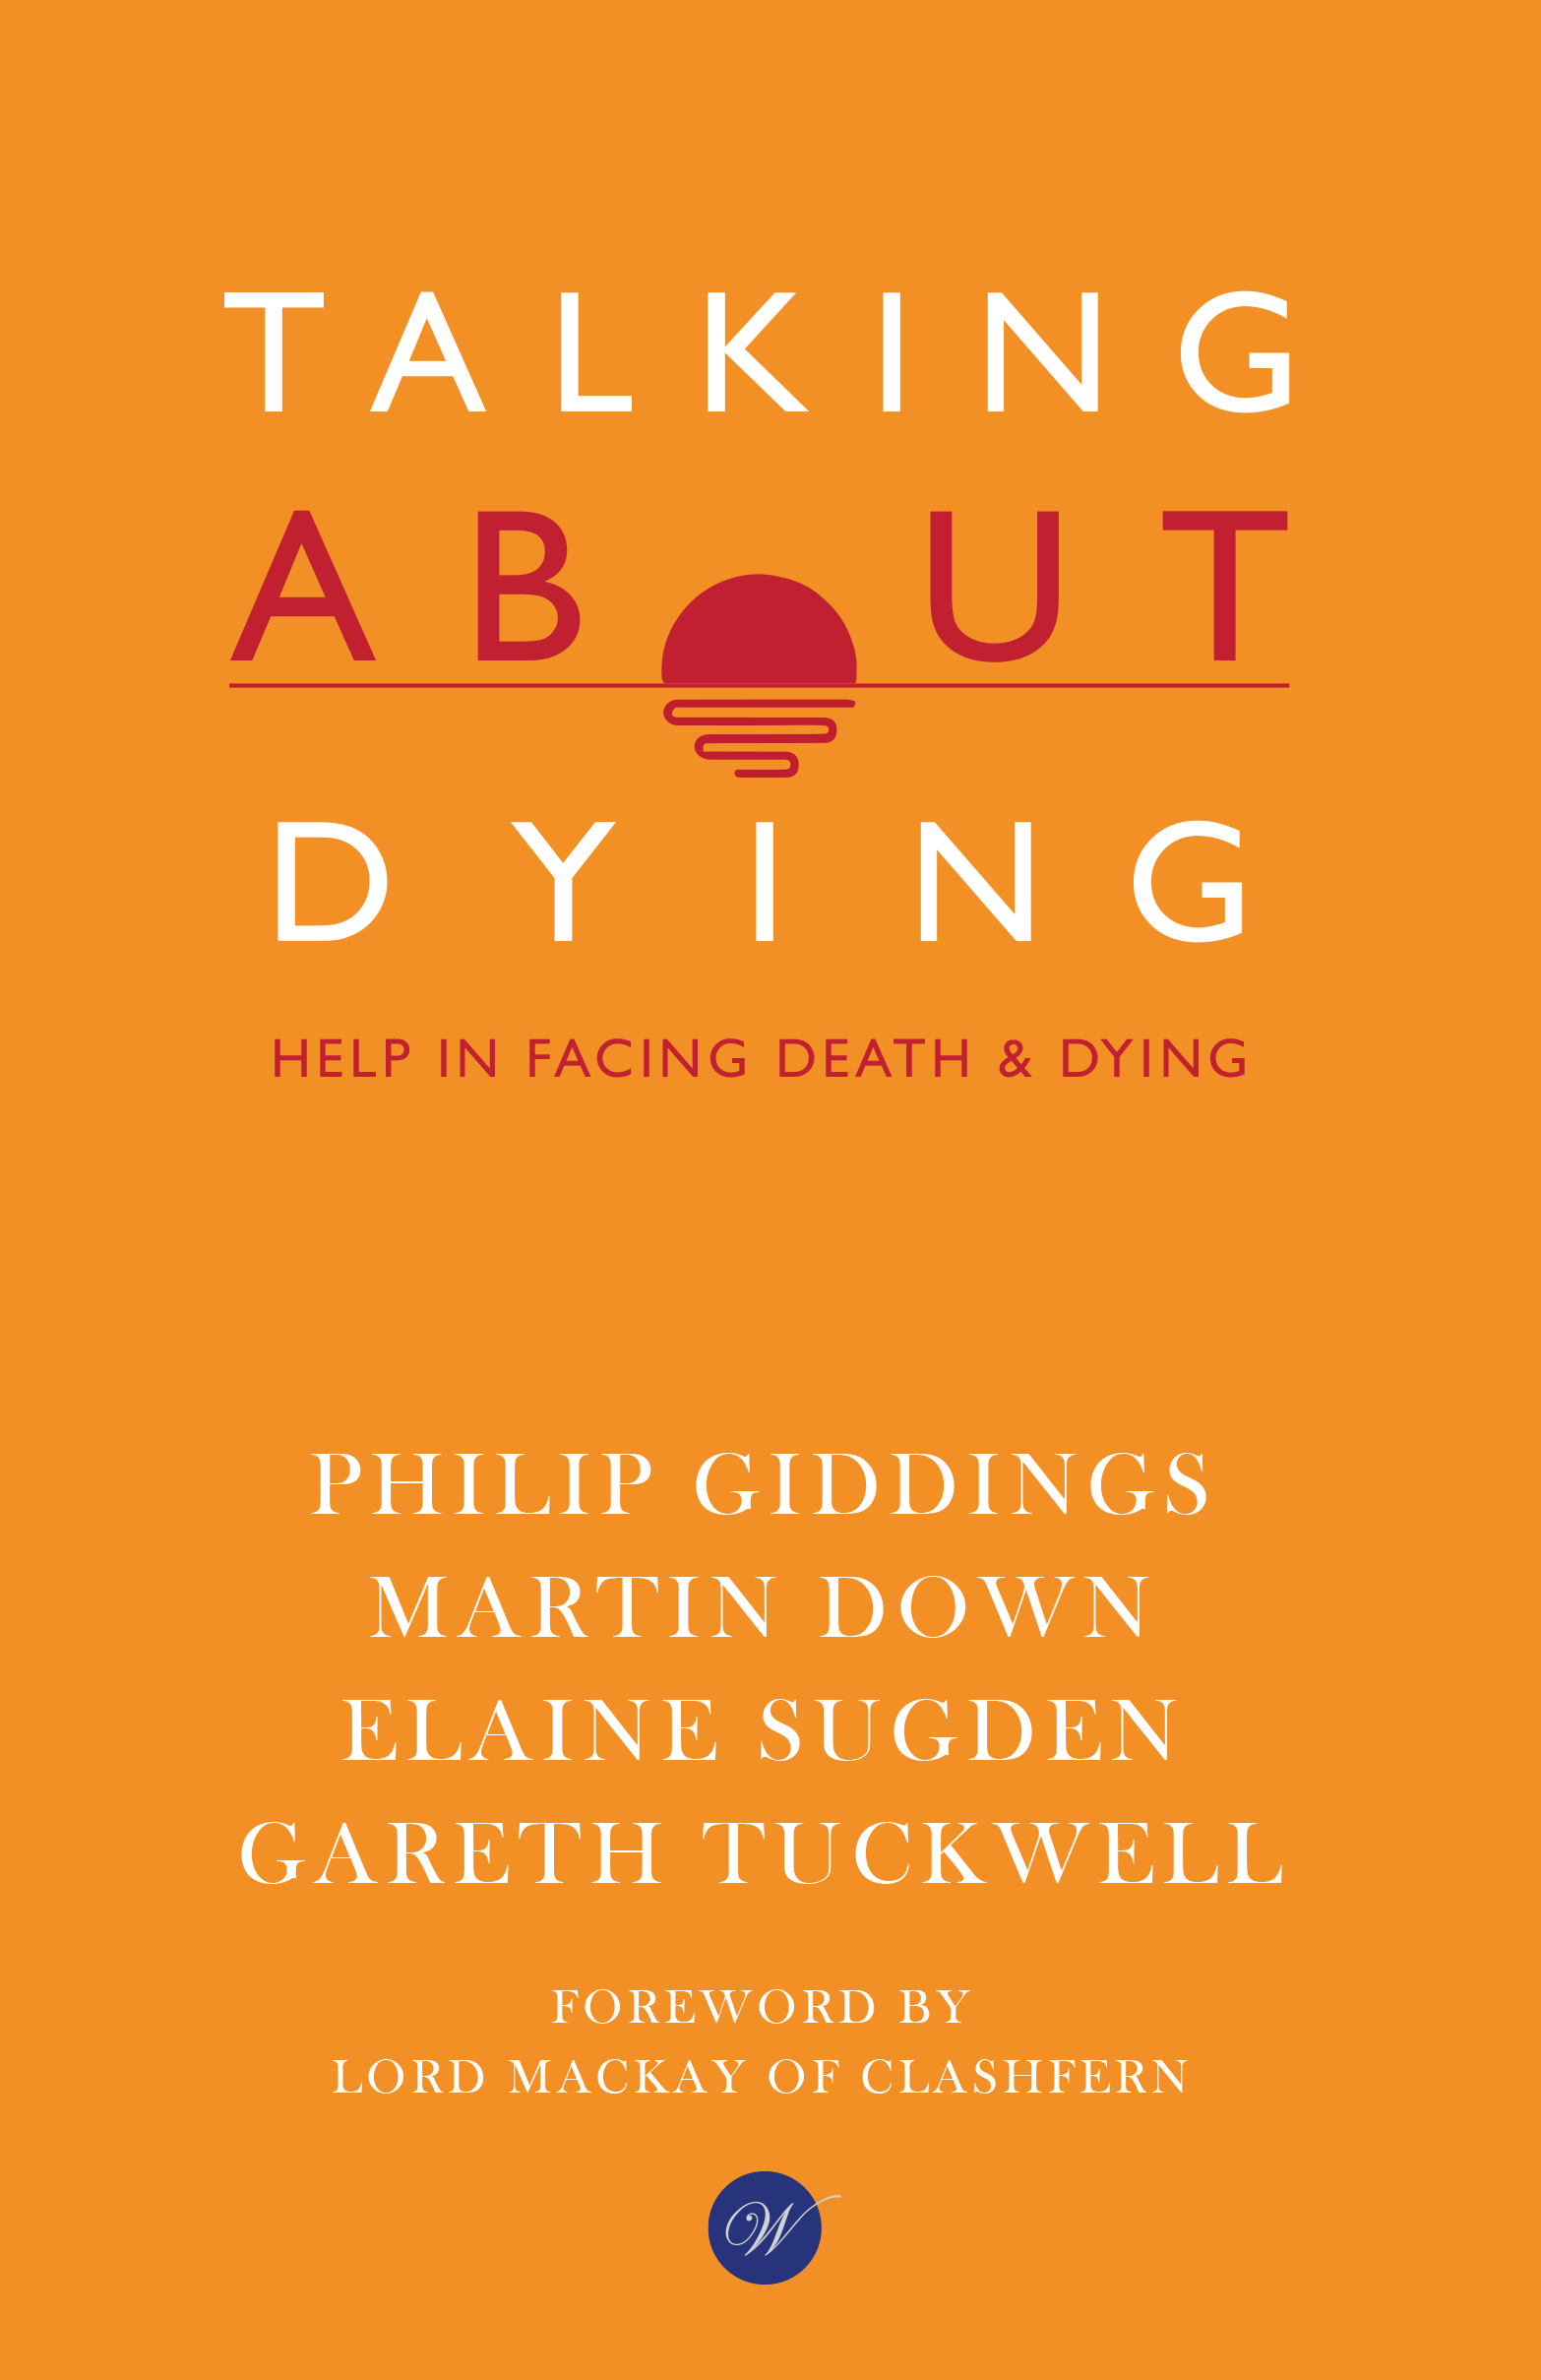 Talking About Dying - Wisdom from a wealth of pastoral and medical experience